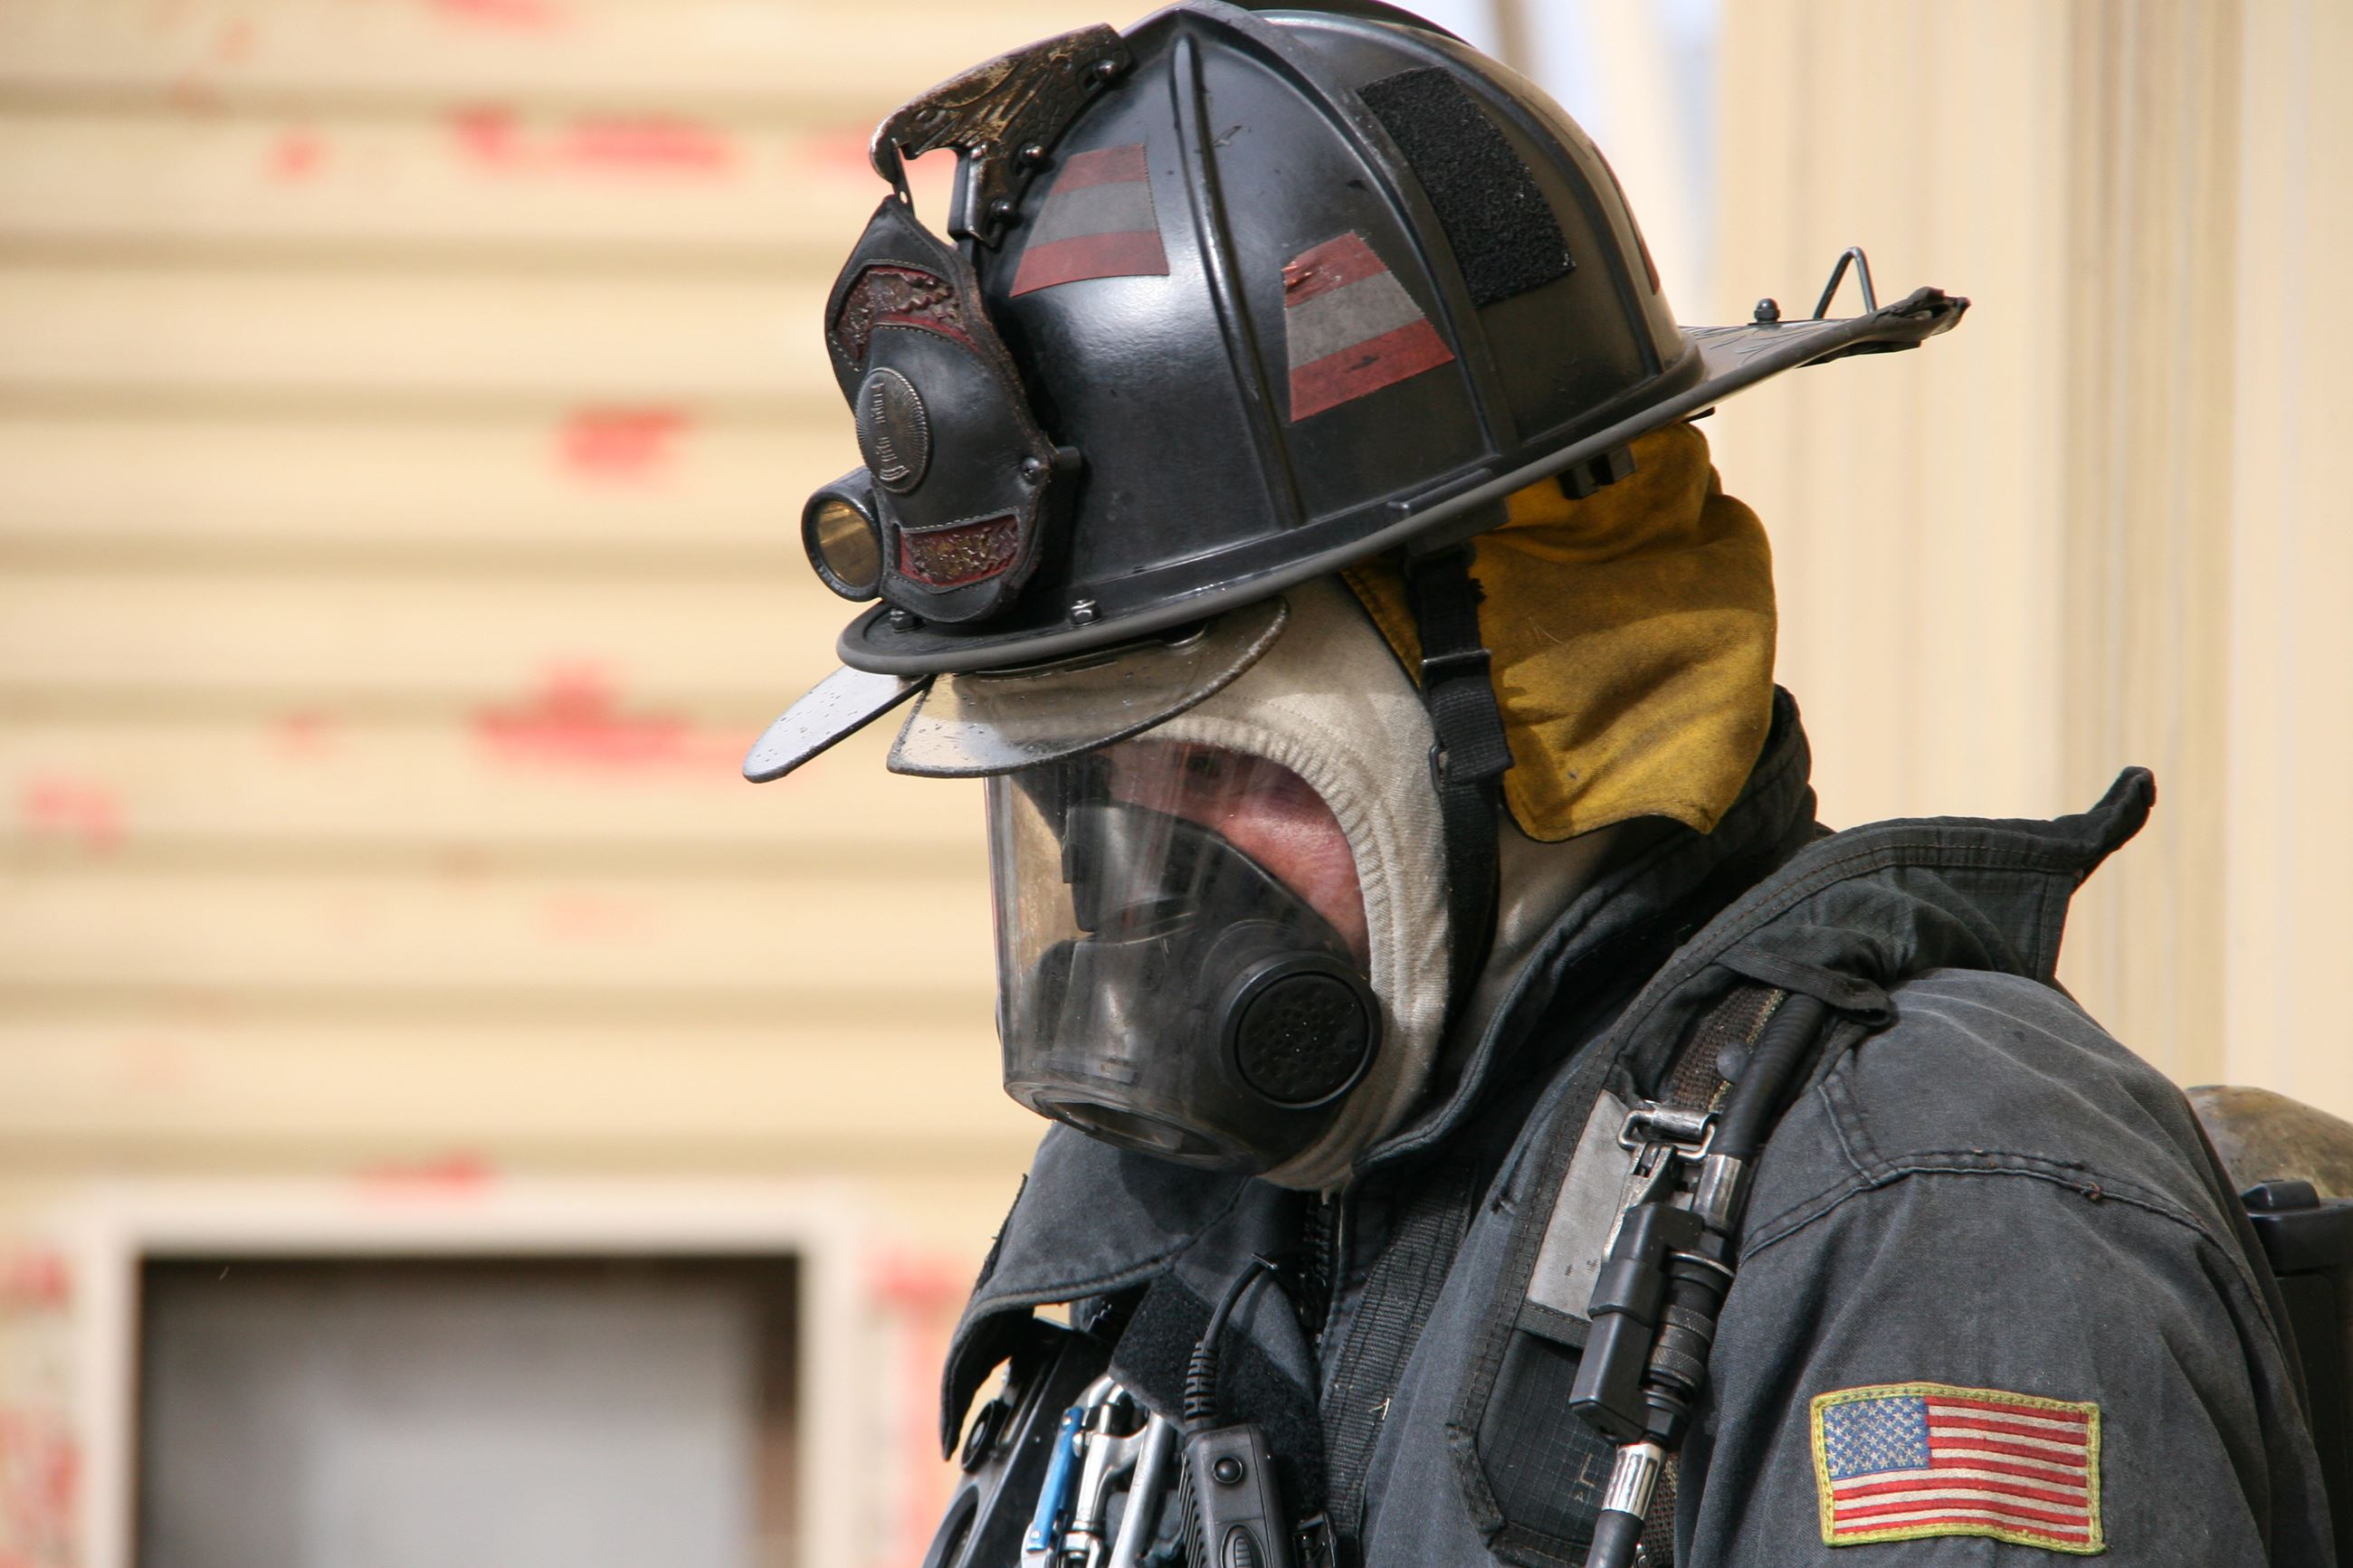 Firefighter in gear